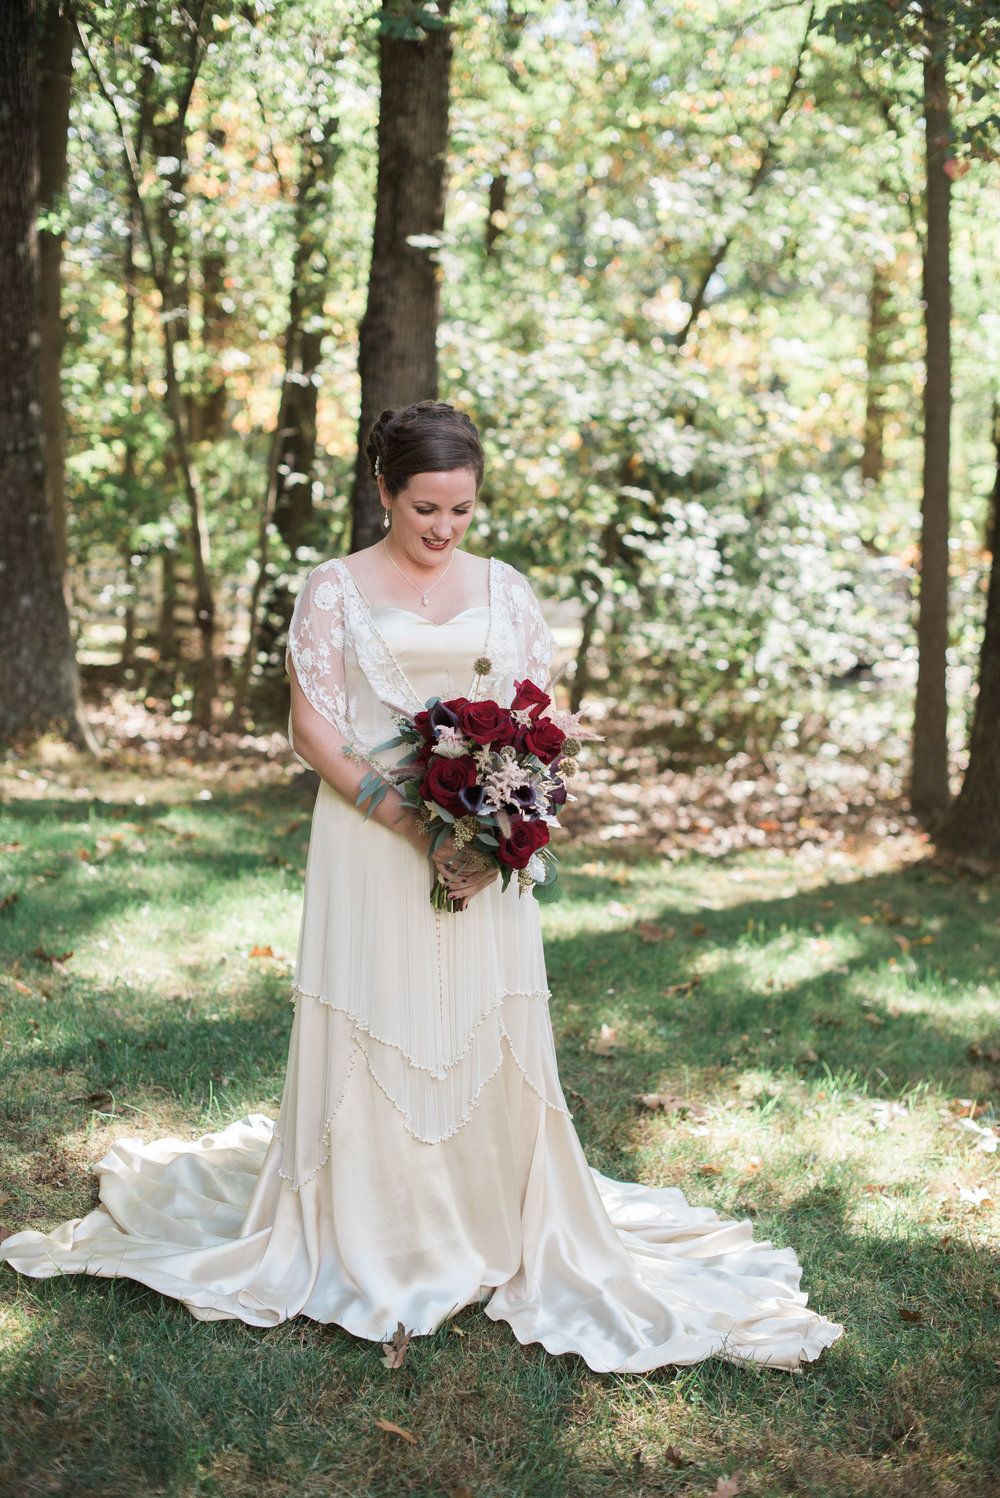 Bride with Bouquet | Maryland, Washington DC, Pennsylvania, Virginia Wedding Photographer | Anne Casey Photography